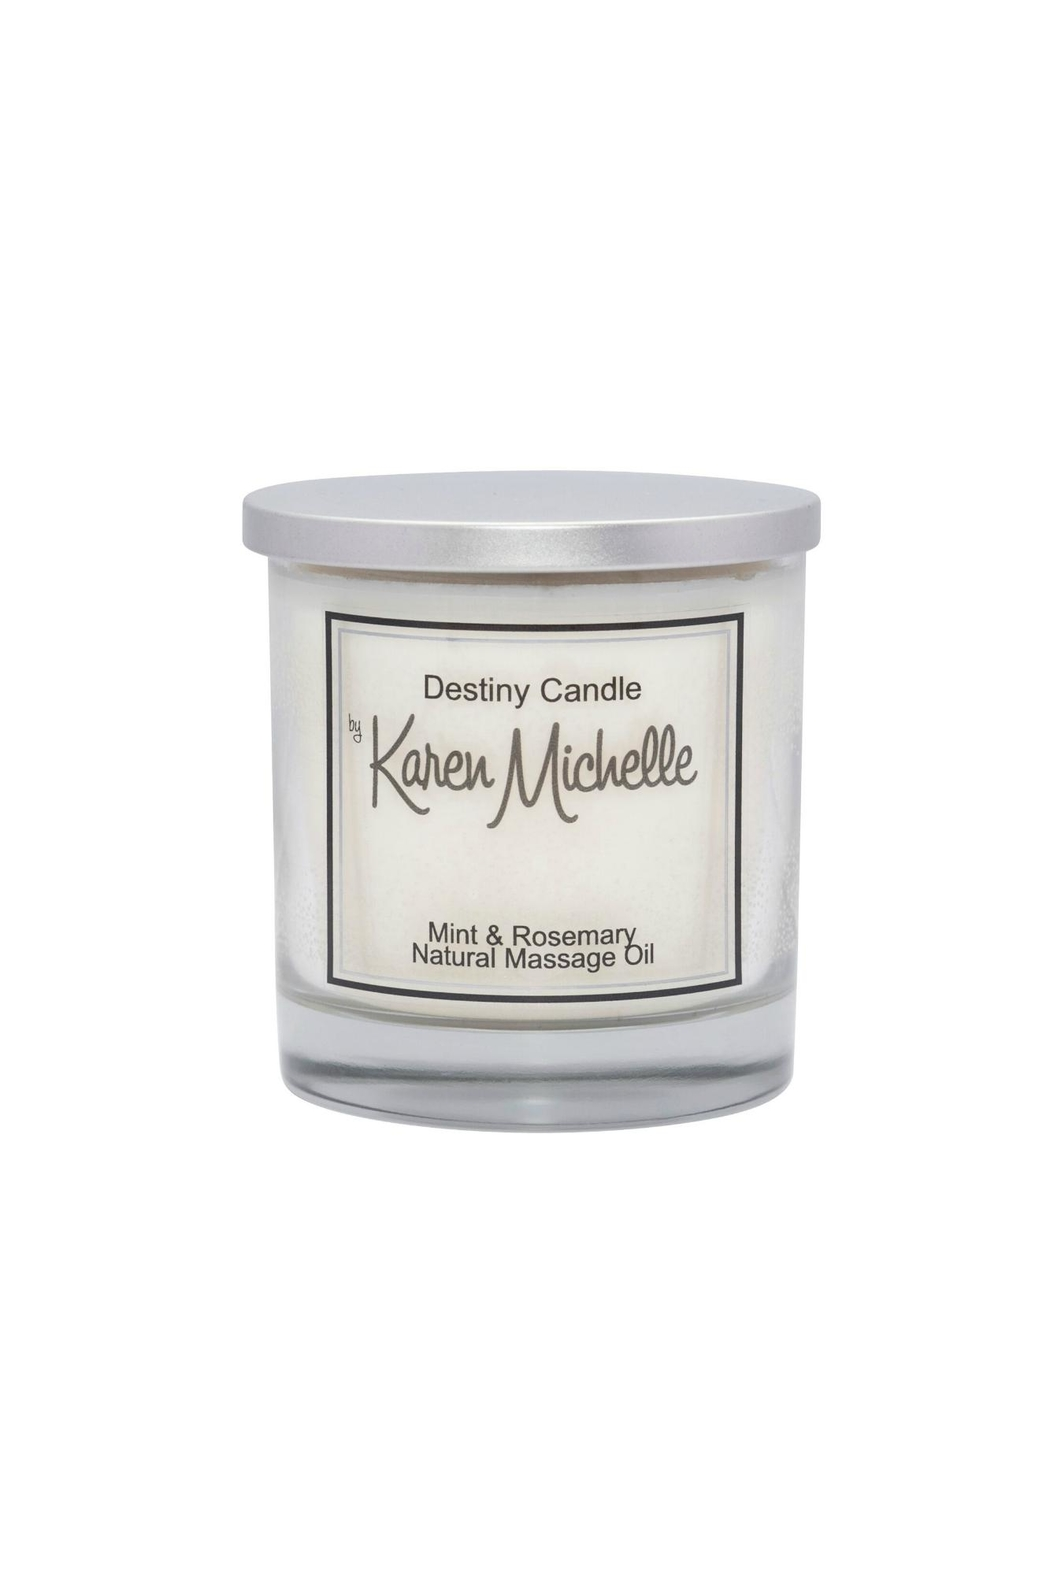 Destiny Candle by Karen Michelle Mint & Rosemary Oil Candle - Main Image